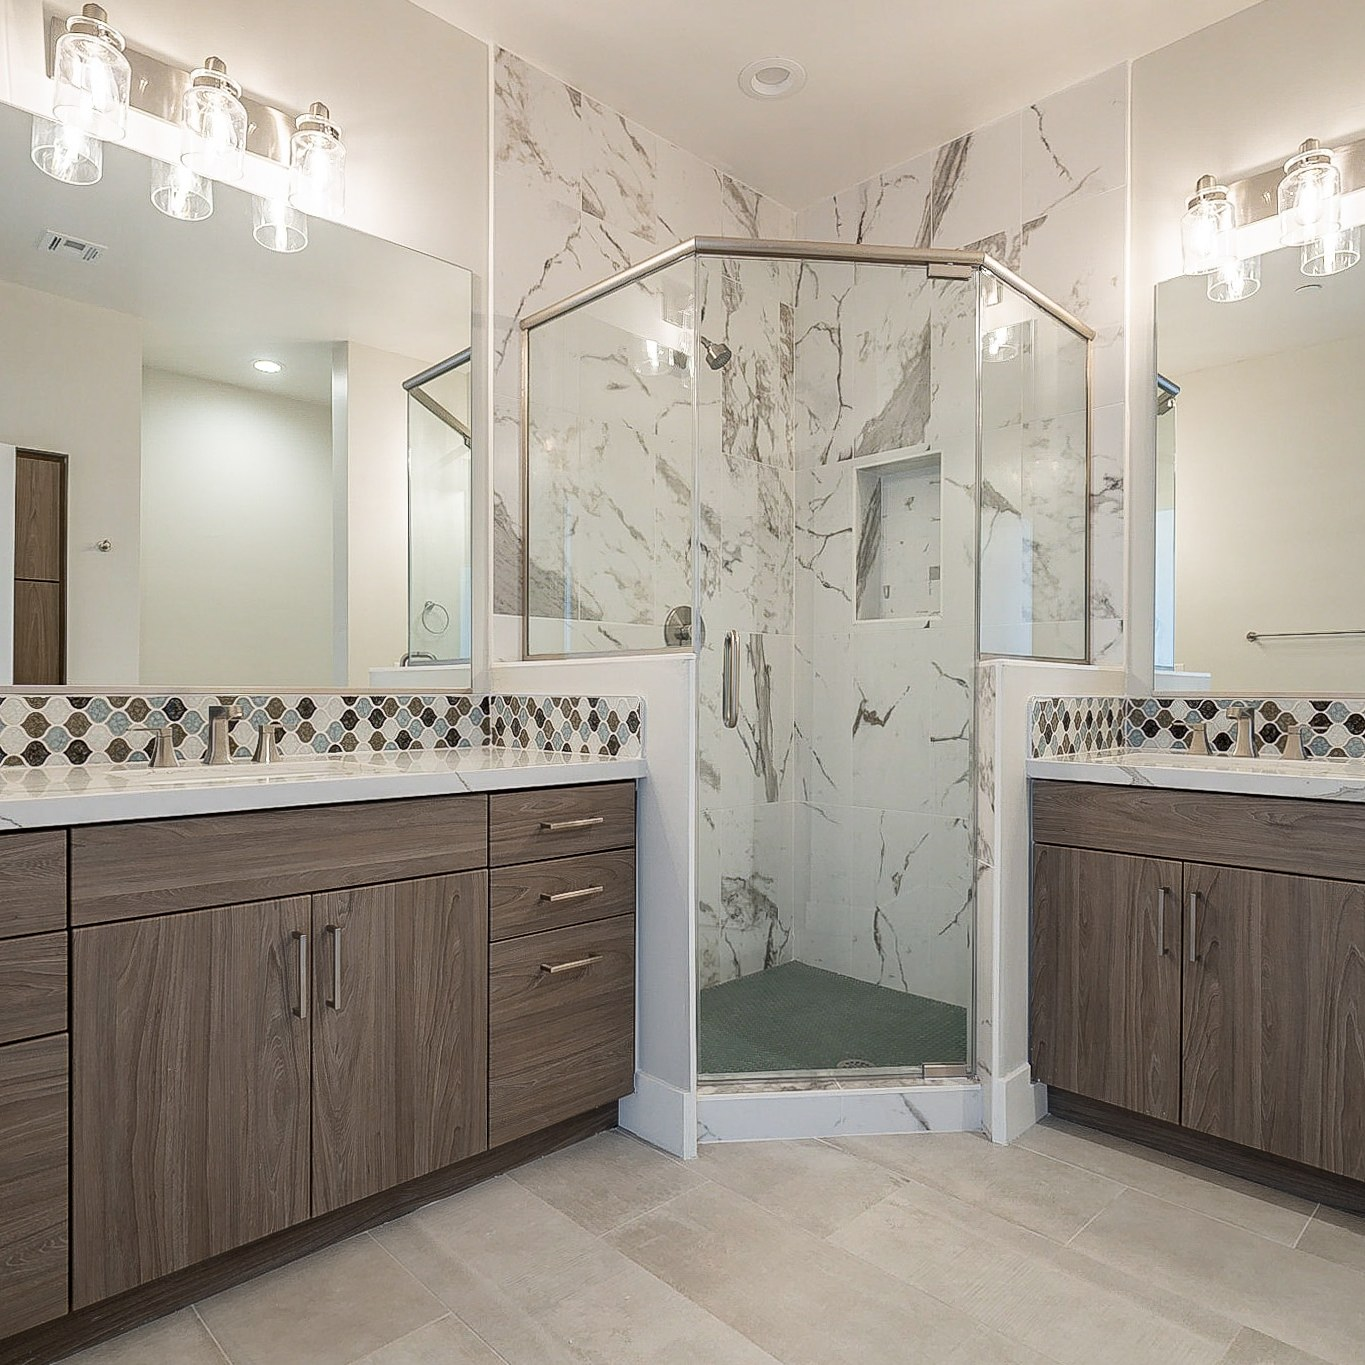 Master bathroom in the new Roosevelt Tempe towhhomes